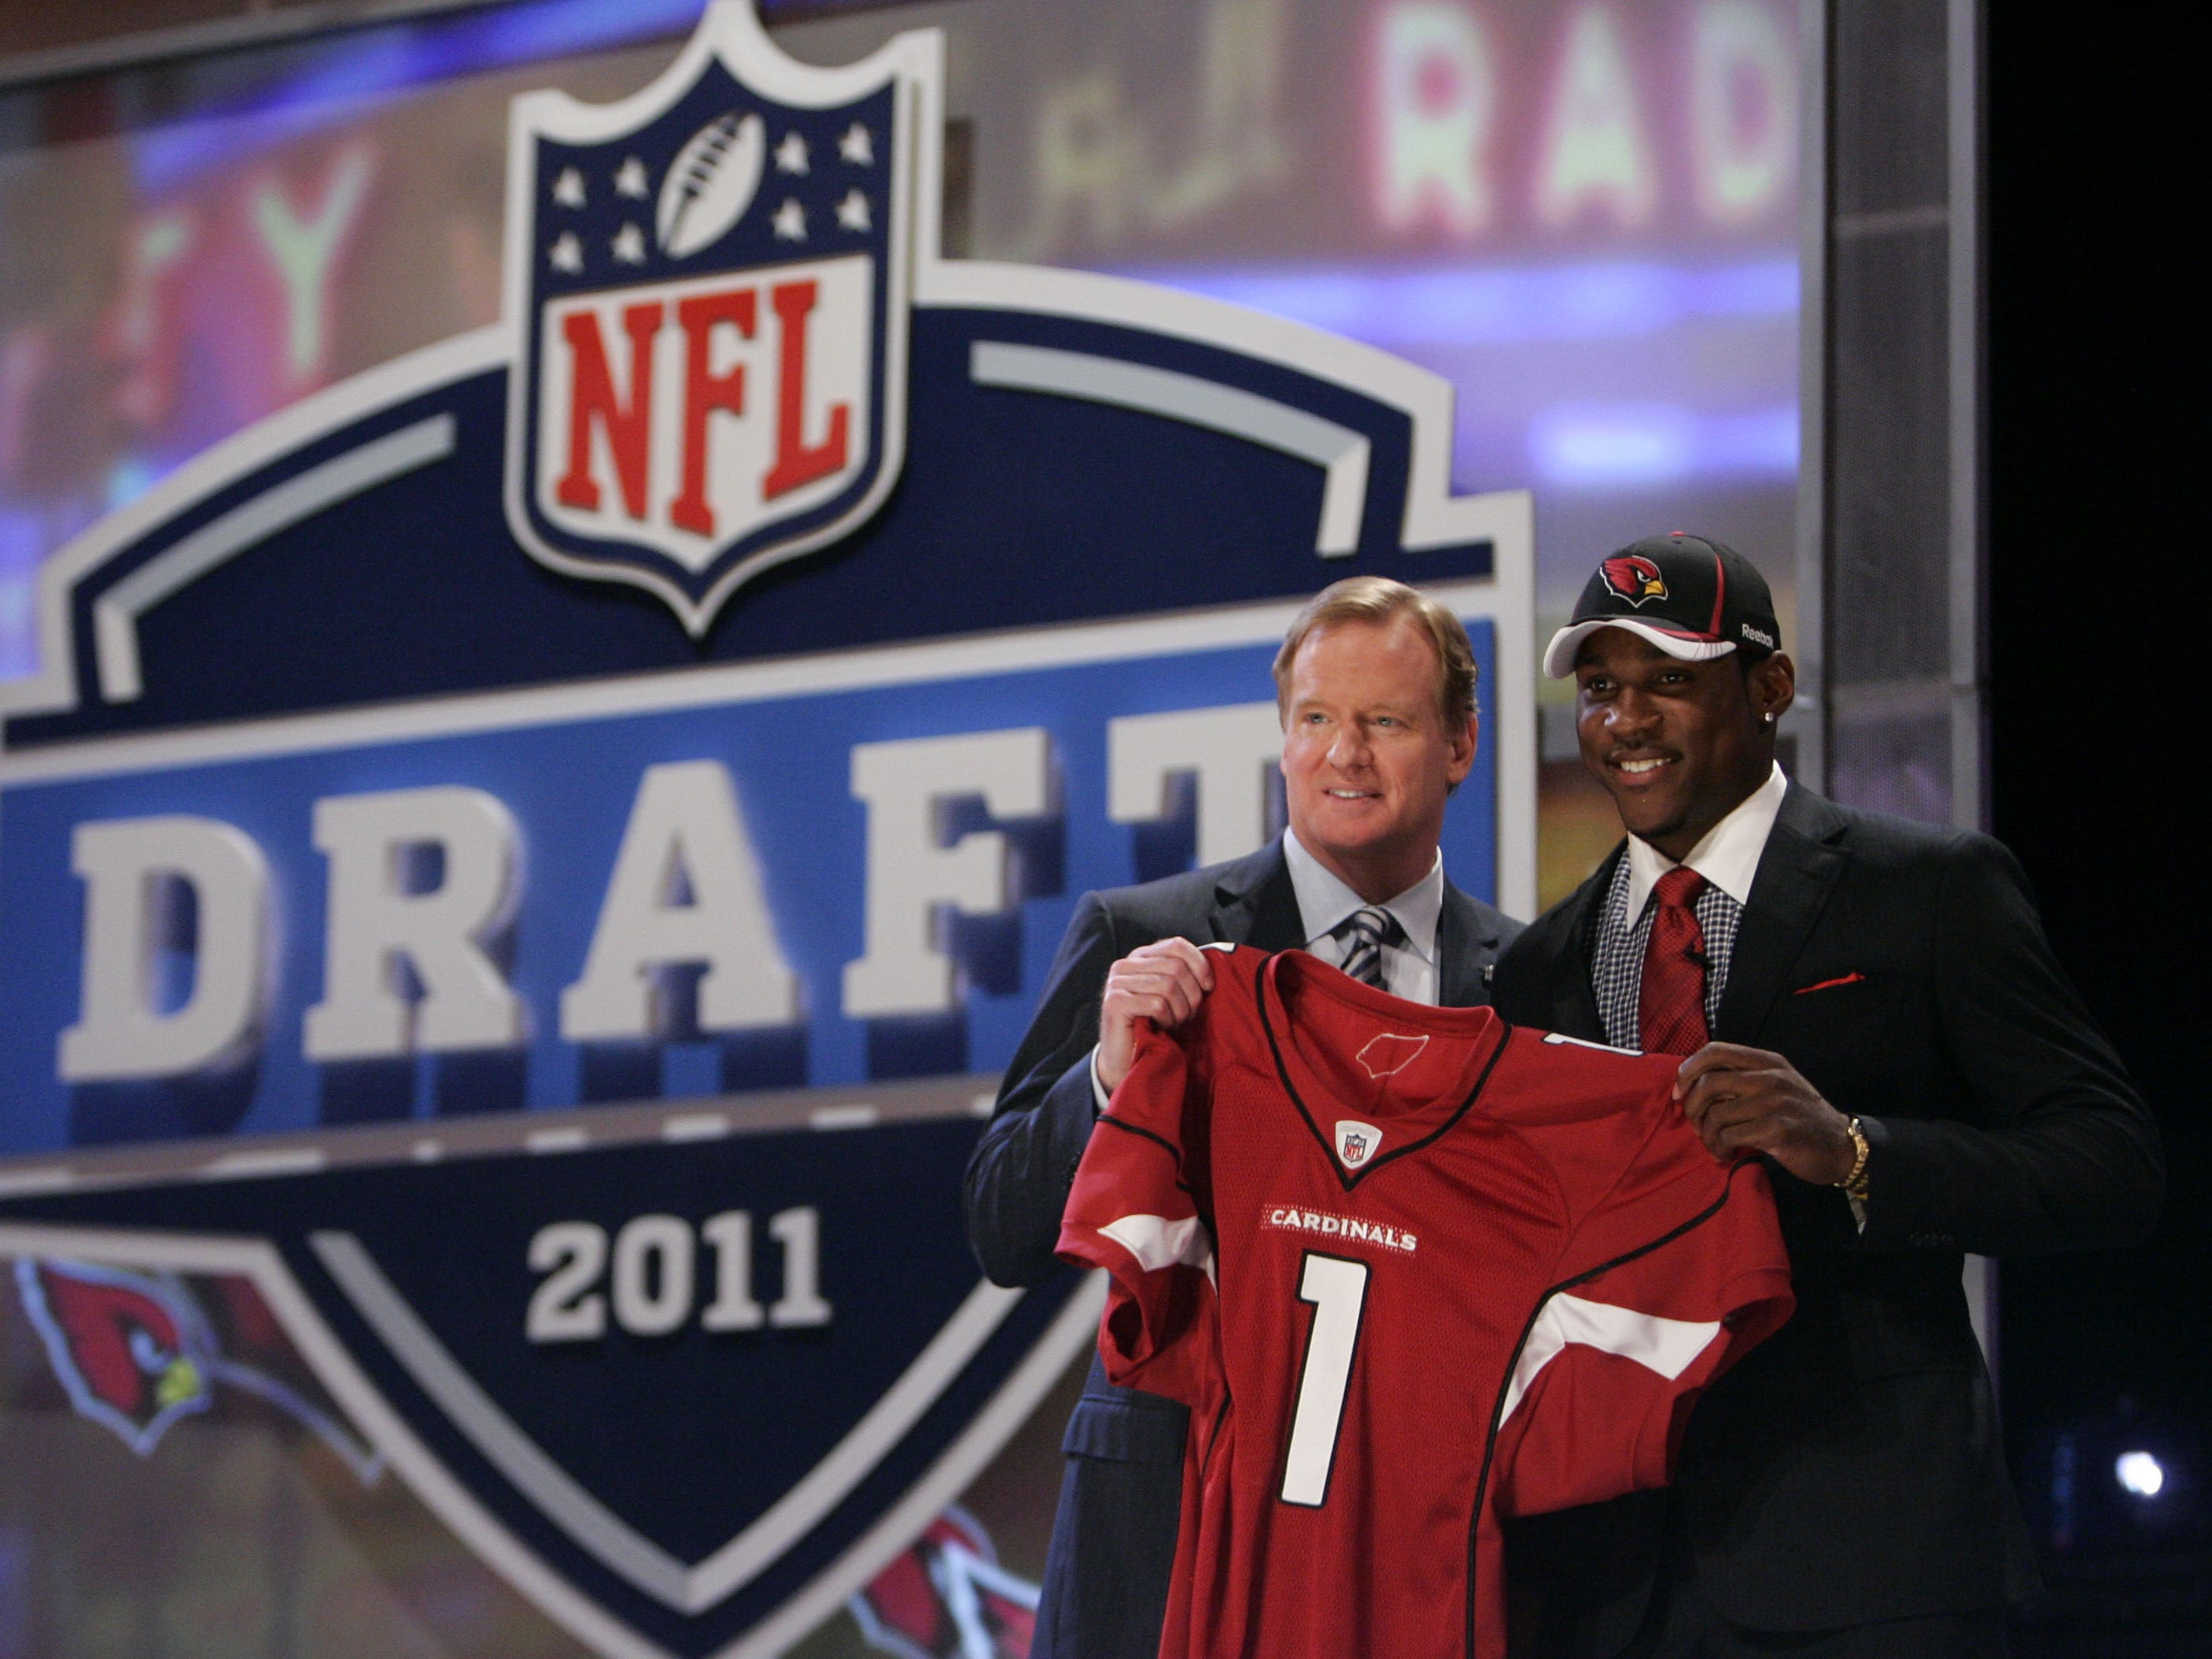 Apr 28, 2011; New York, NY, USA; NFL commissioner Roger Goodell introduces cornerback Patrick Peterson (LSU) as the number five overall pick to the Arizona Cardinals in the 2011 NFL Draft at Radio City Music Hall. Mandatory Credit: Jerry Lai-US PRESSWIRE